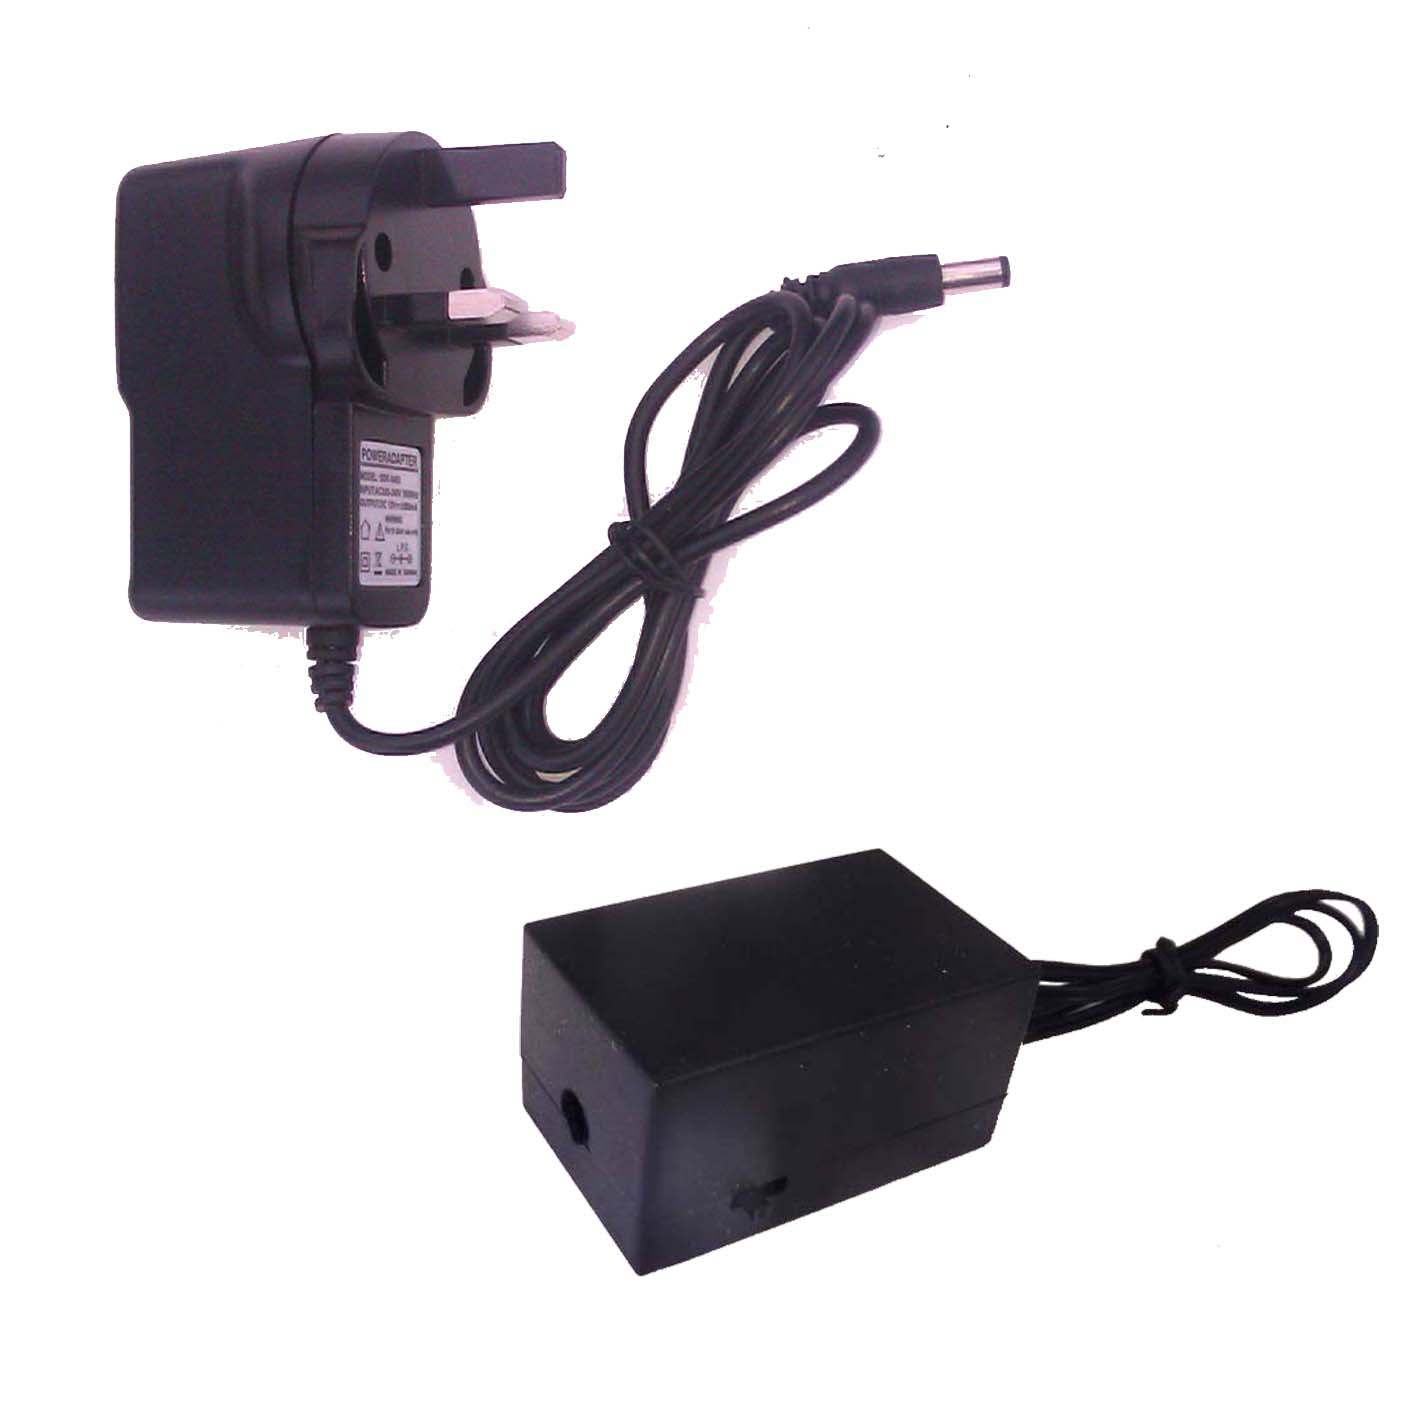 MAINS POWERED Driver for 5m to 15m EL Wire